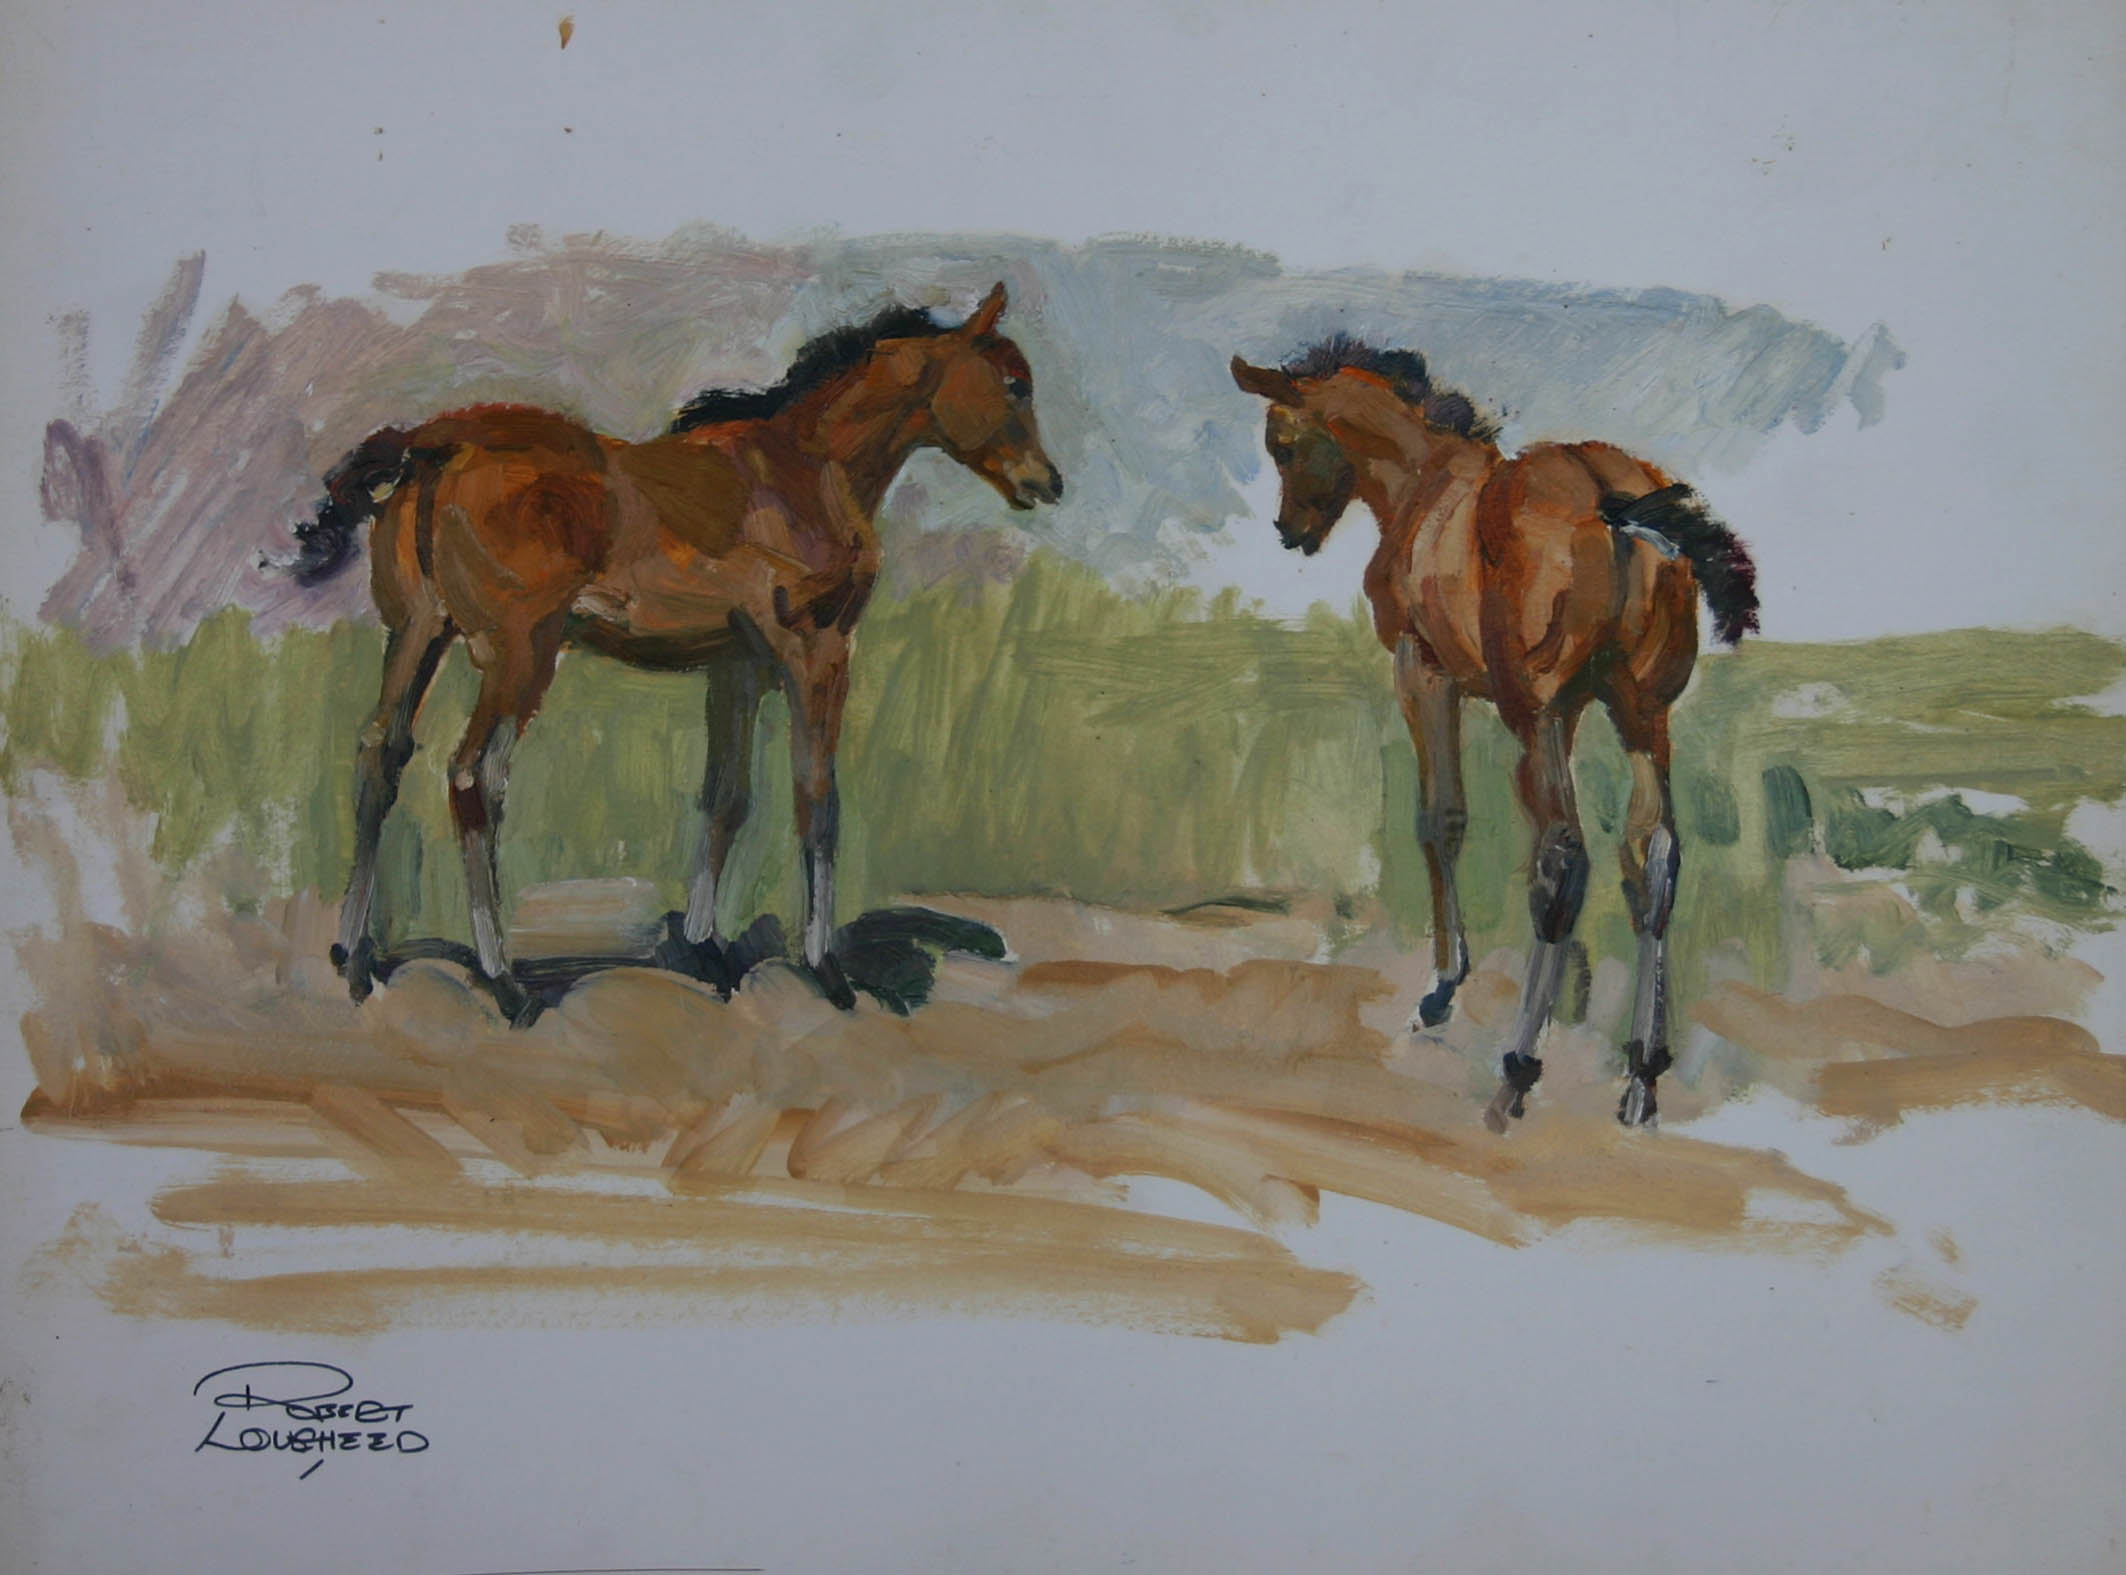 Two Young Colts by  Robert Lougheed - Masterpiece Online